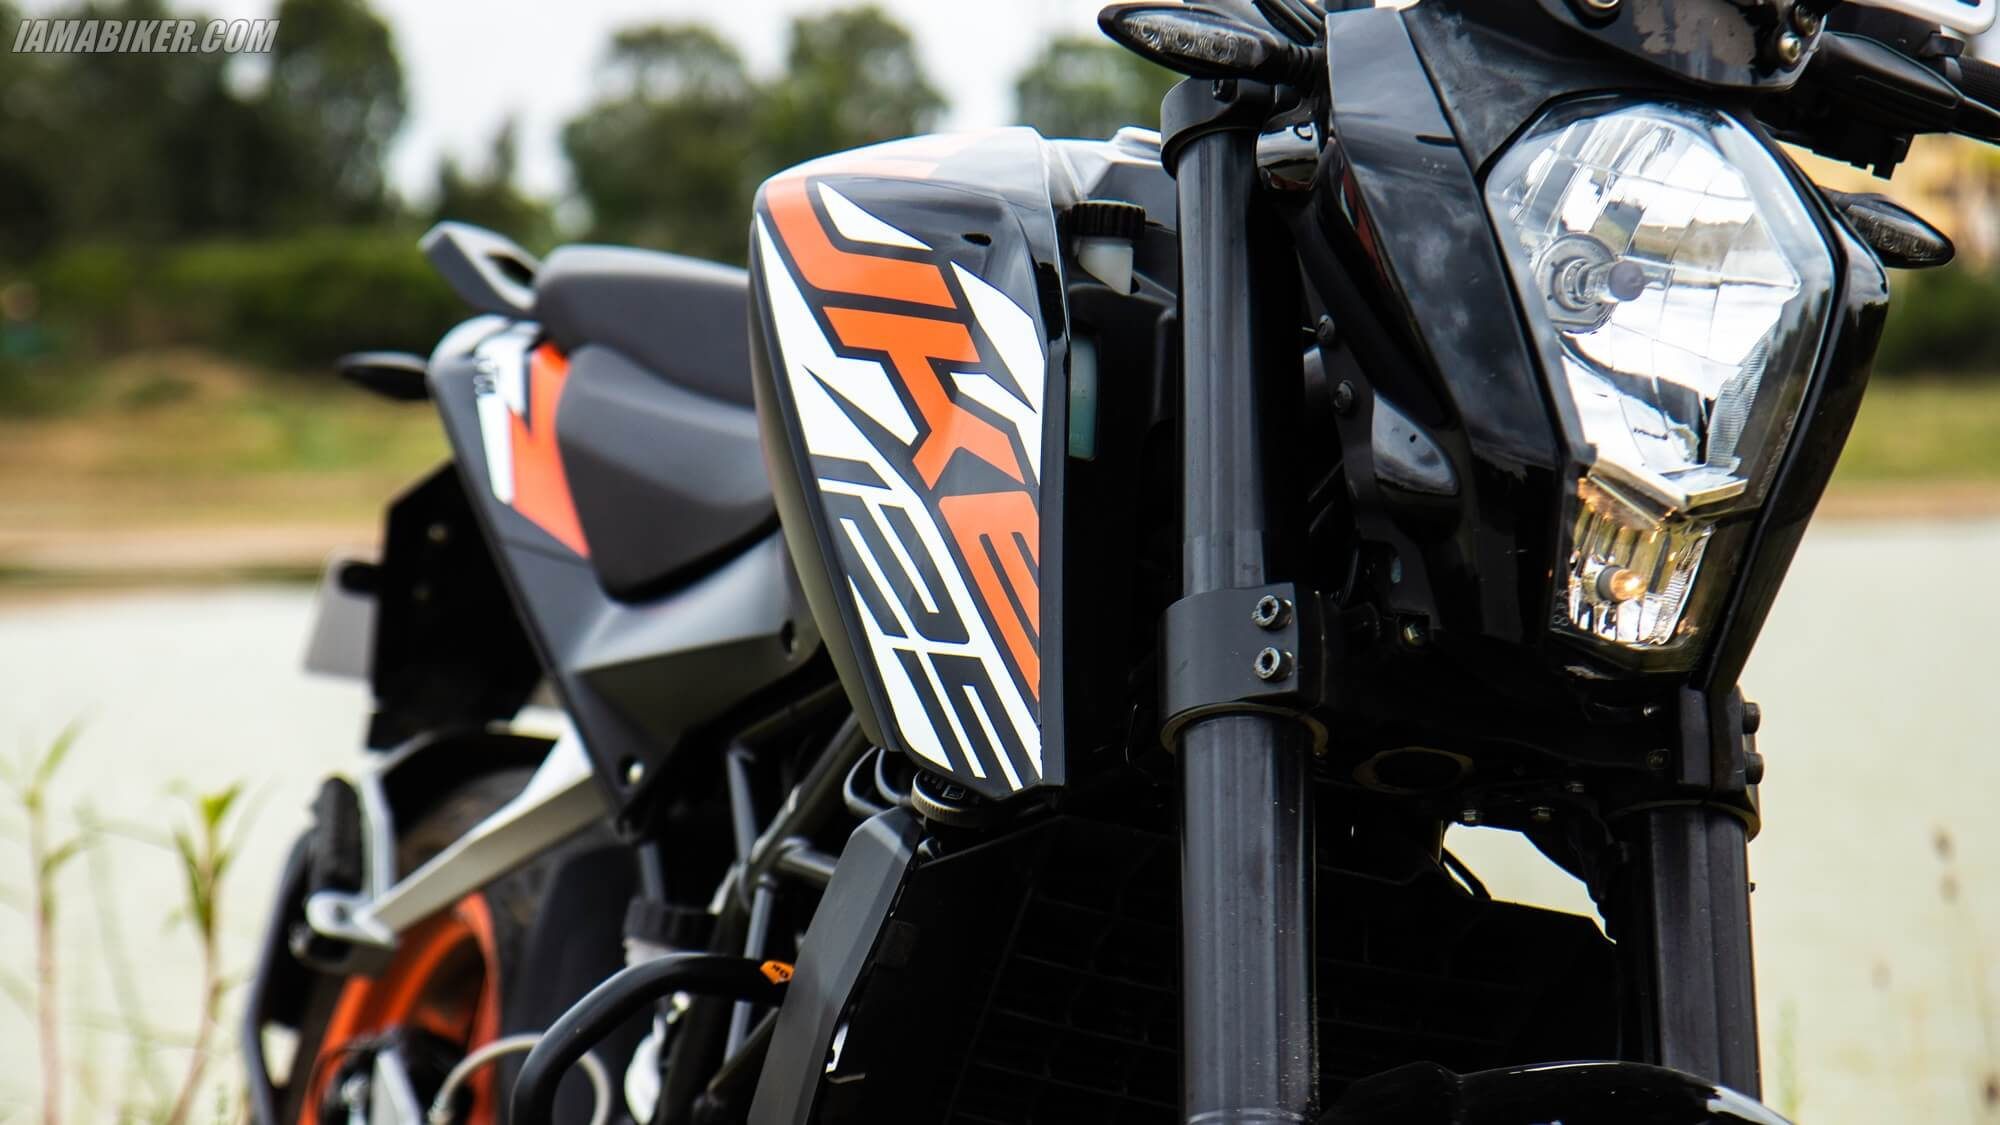 KTM Duke 125 review India